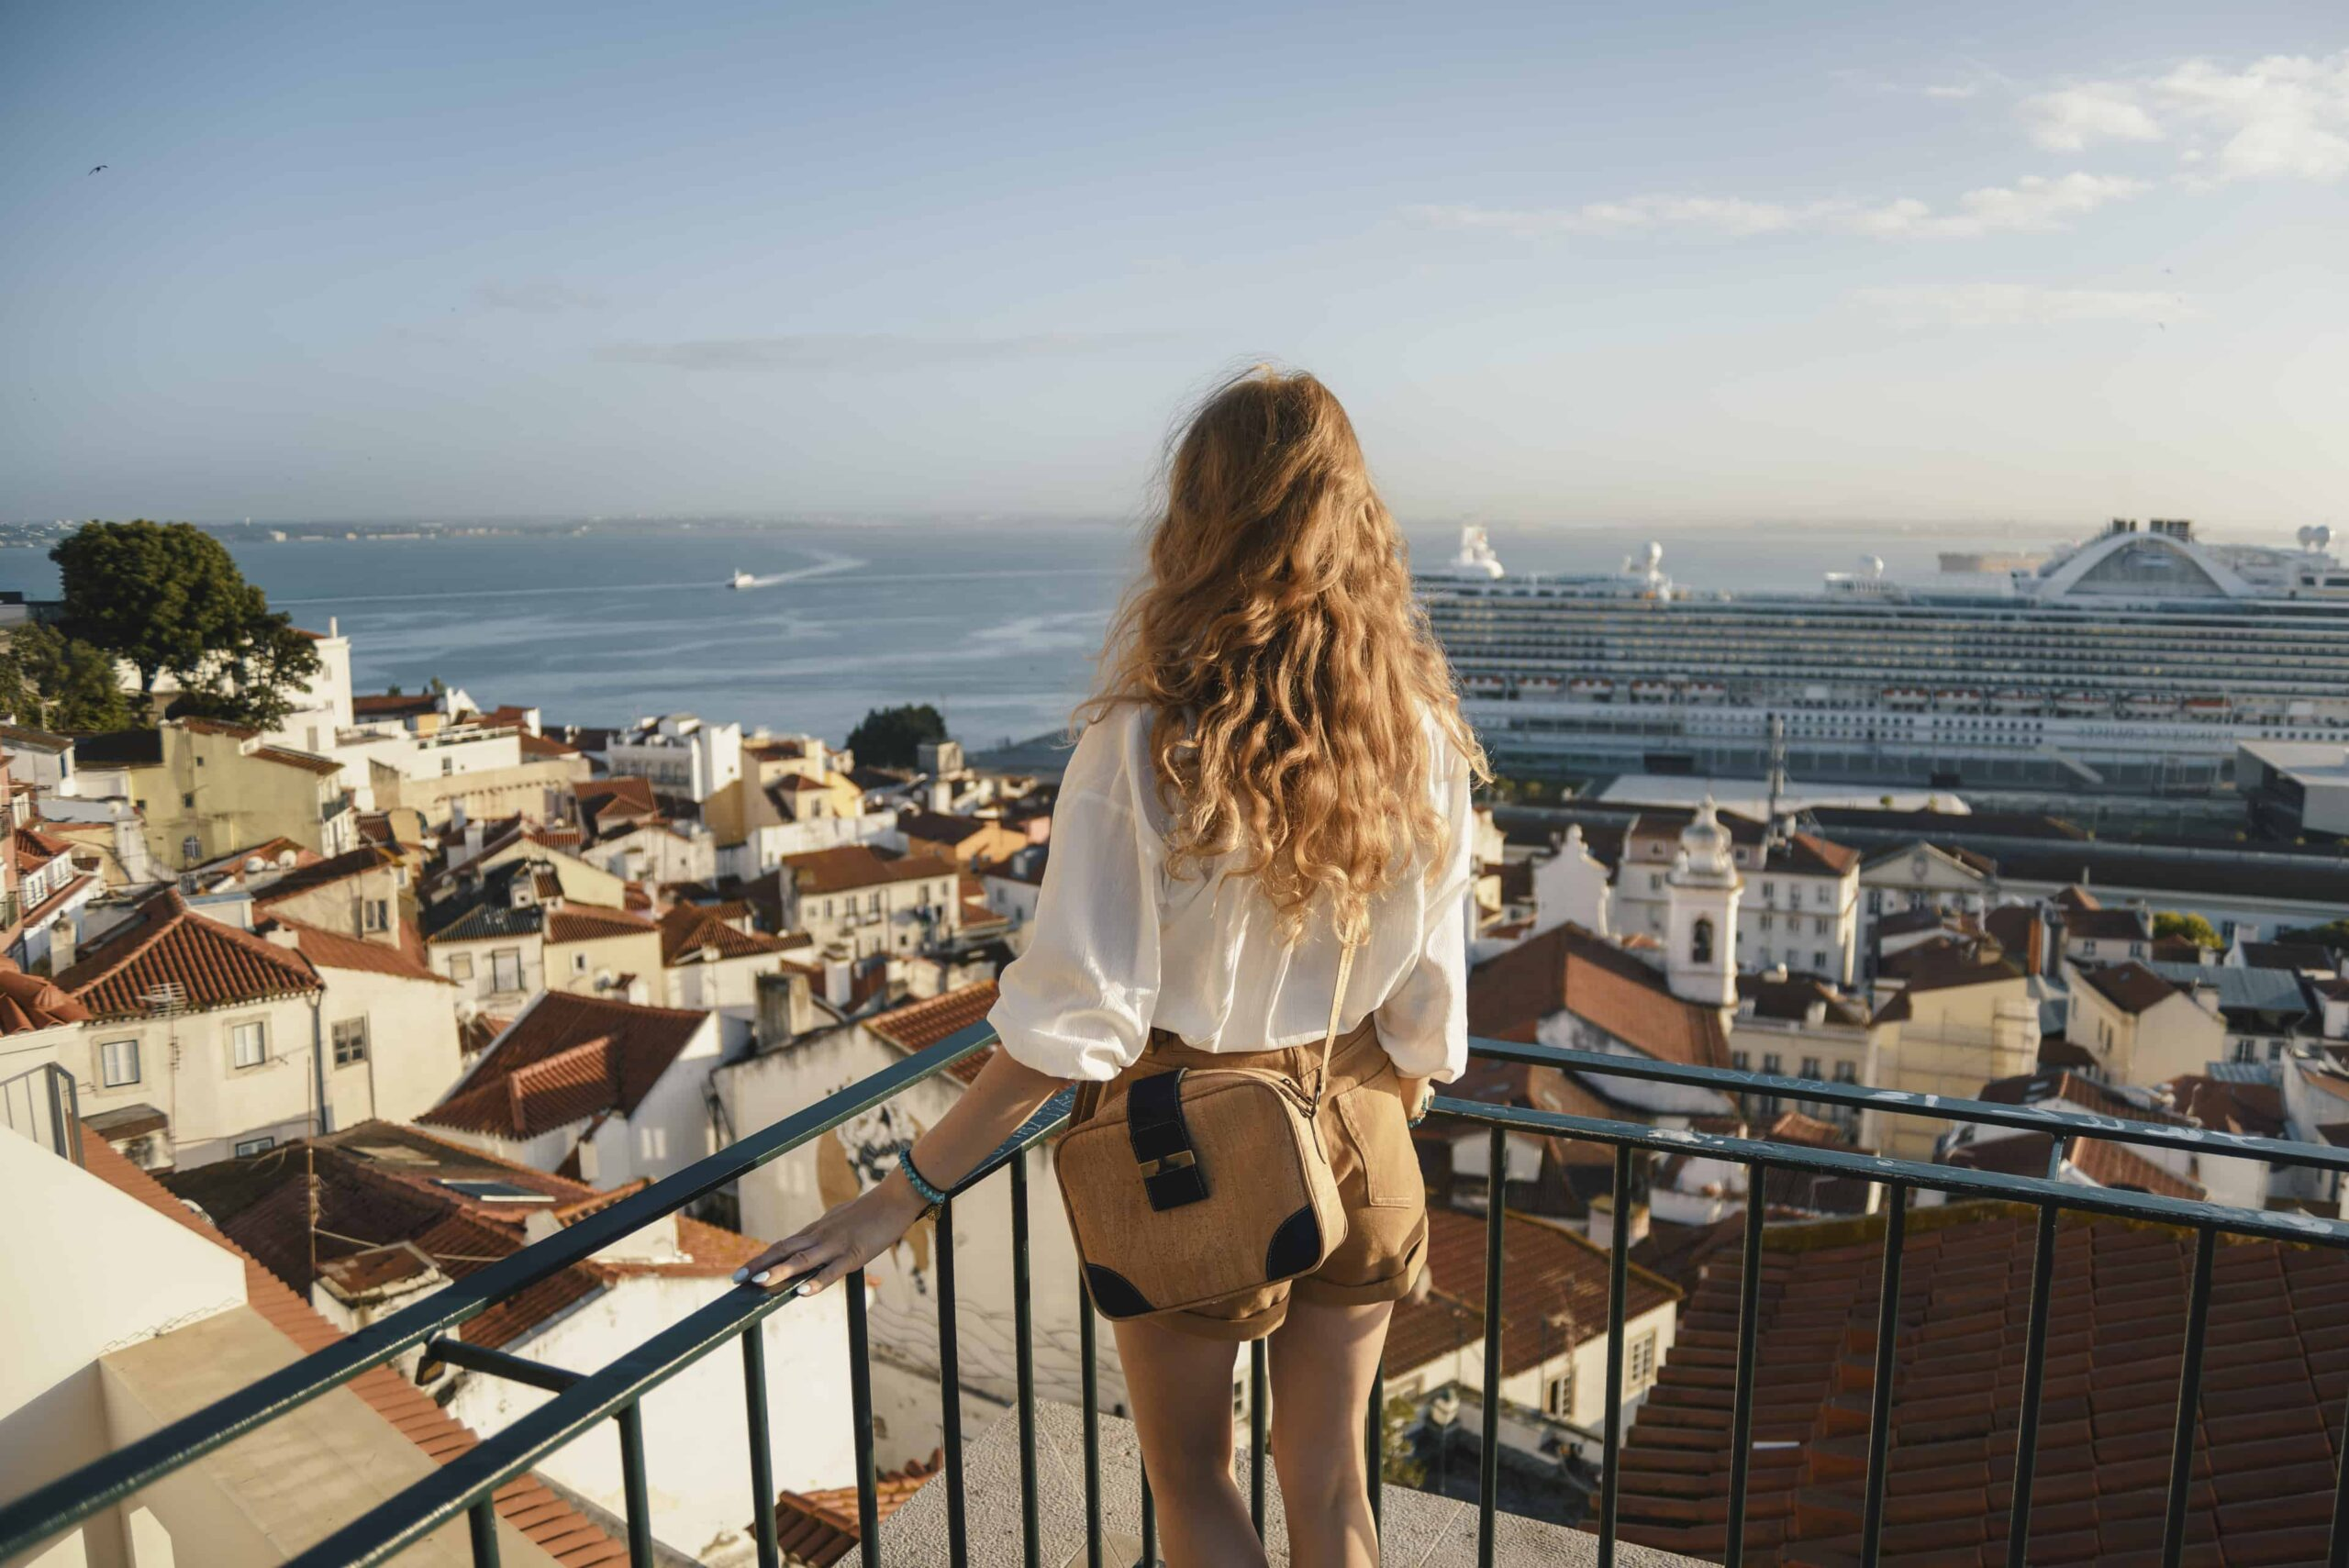 Best Travel Purse for Europe - How to find the best handbag for travelling in Europe